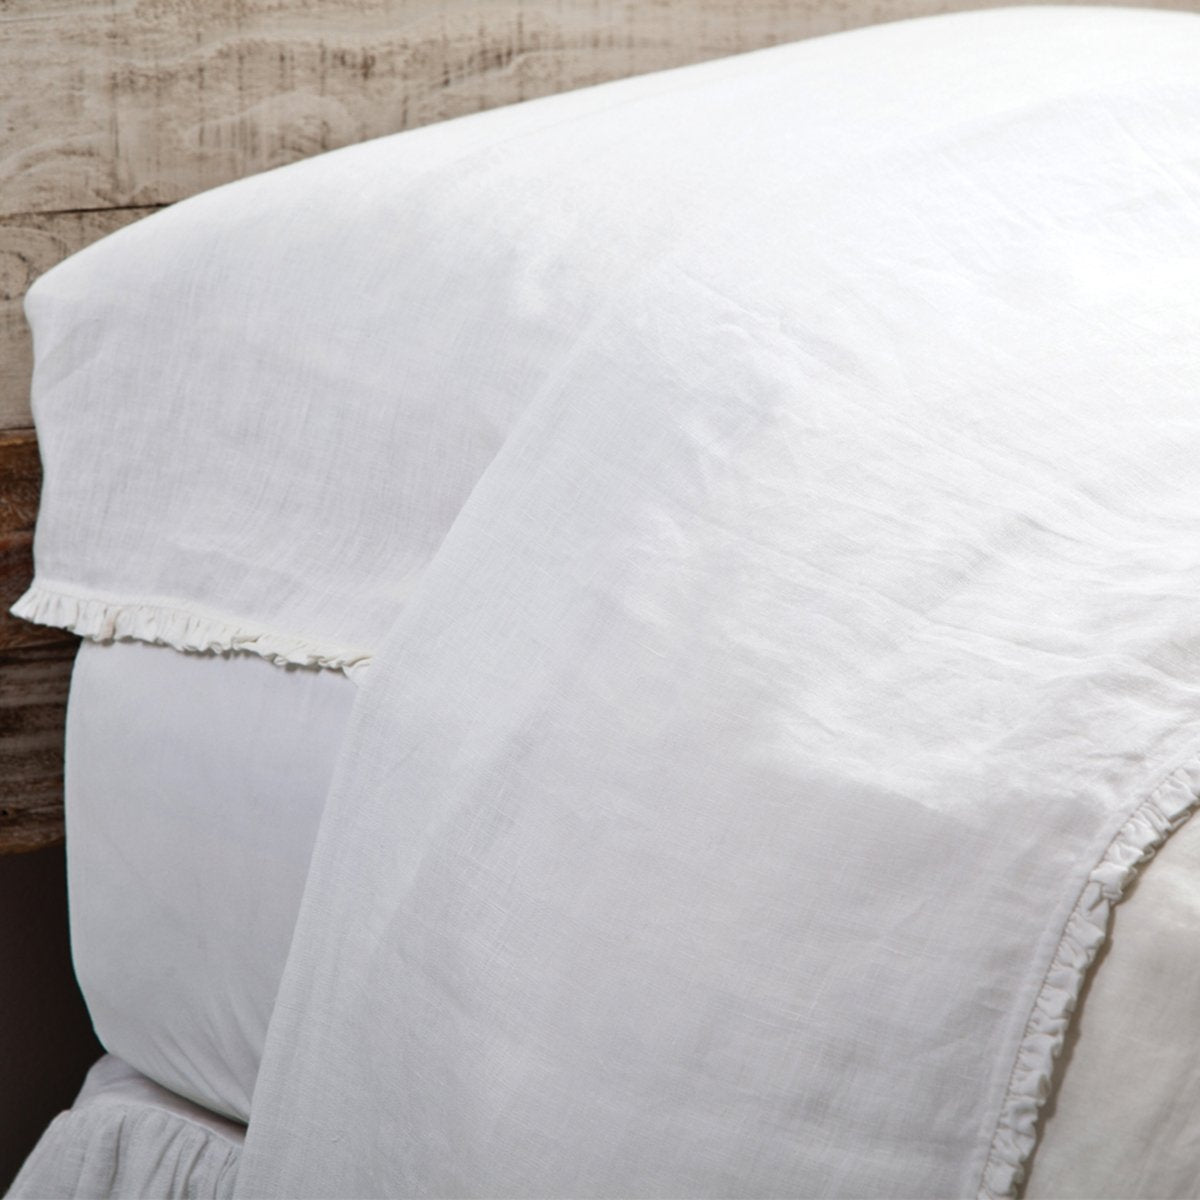 Charlie Flat Sheet by Pom Pom at Home-Bed & Bath-Pom Pom-Queen-White-A Cottage in the City